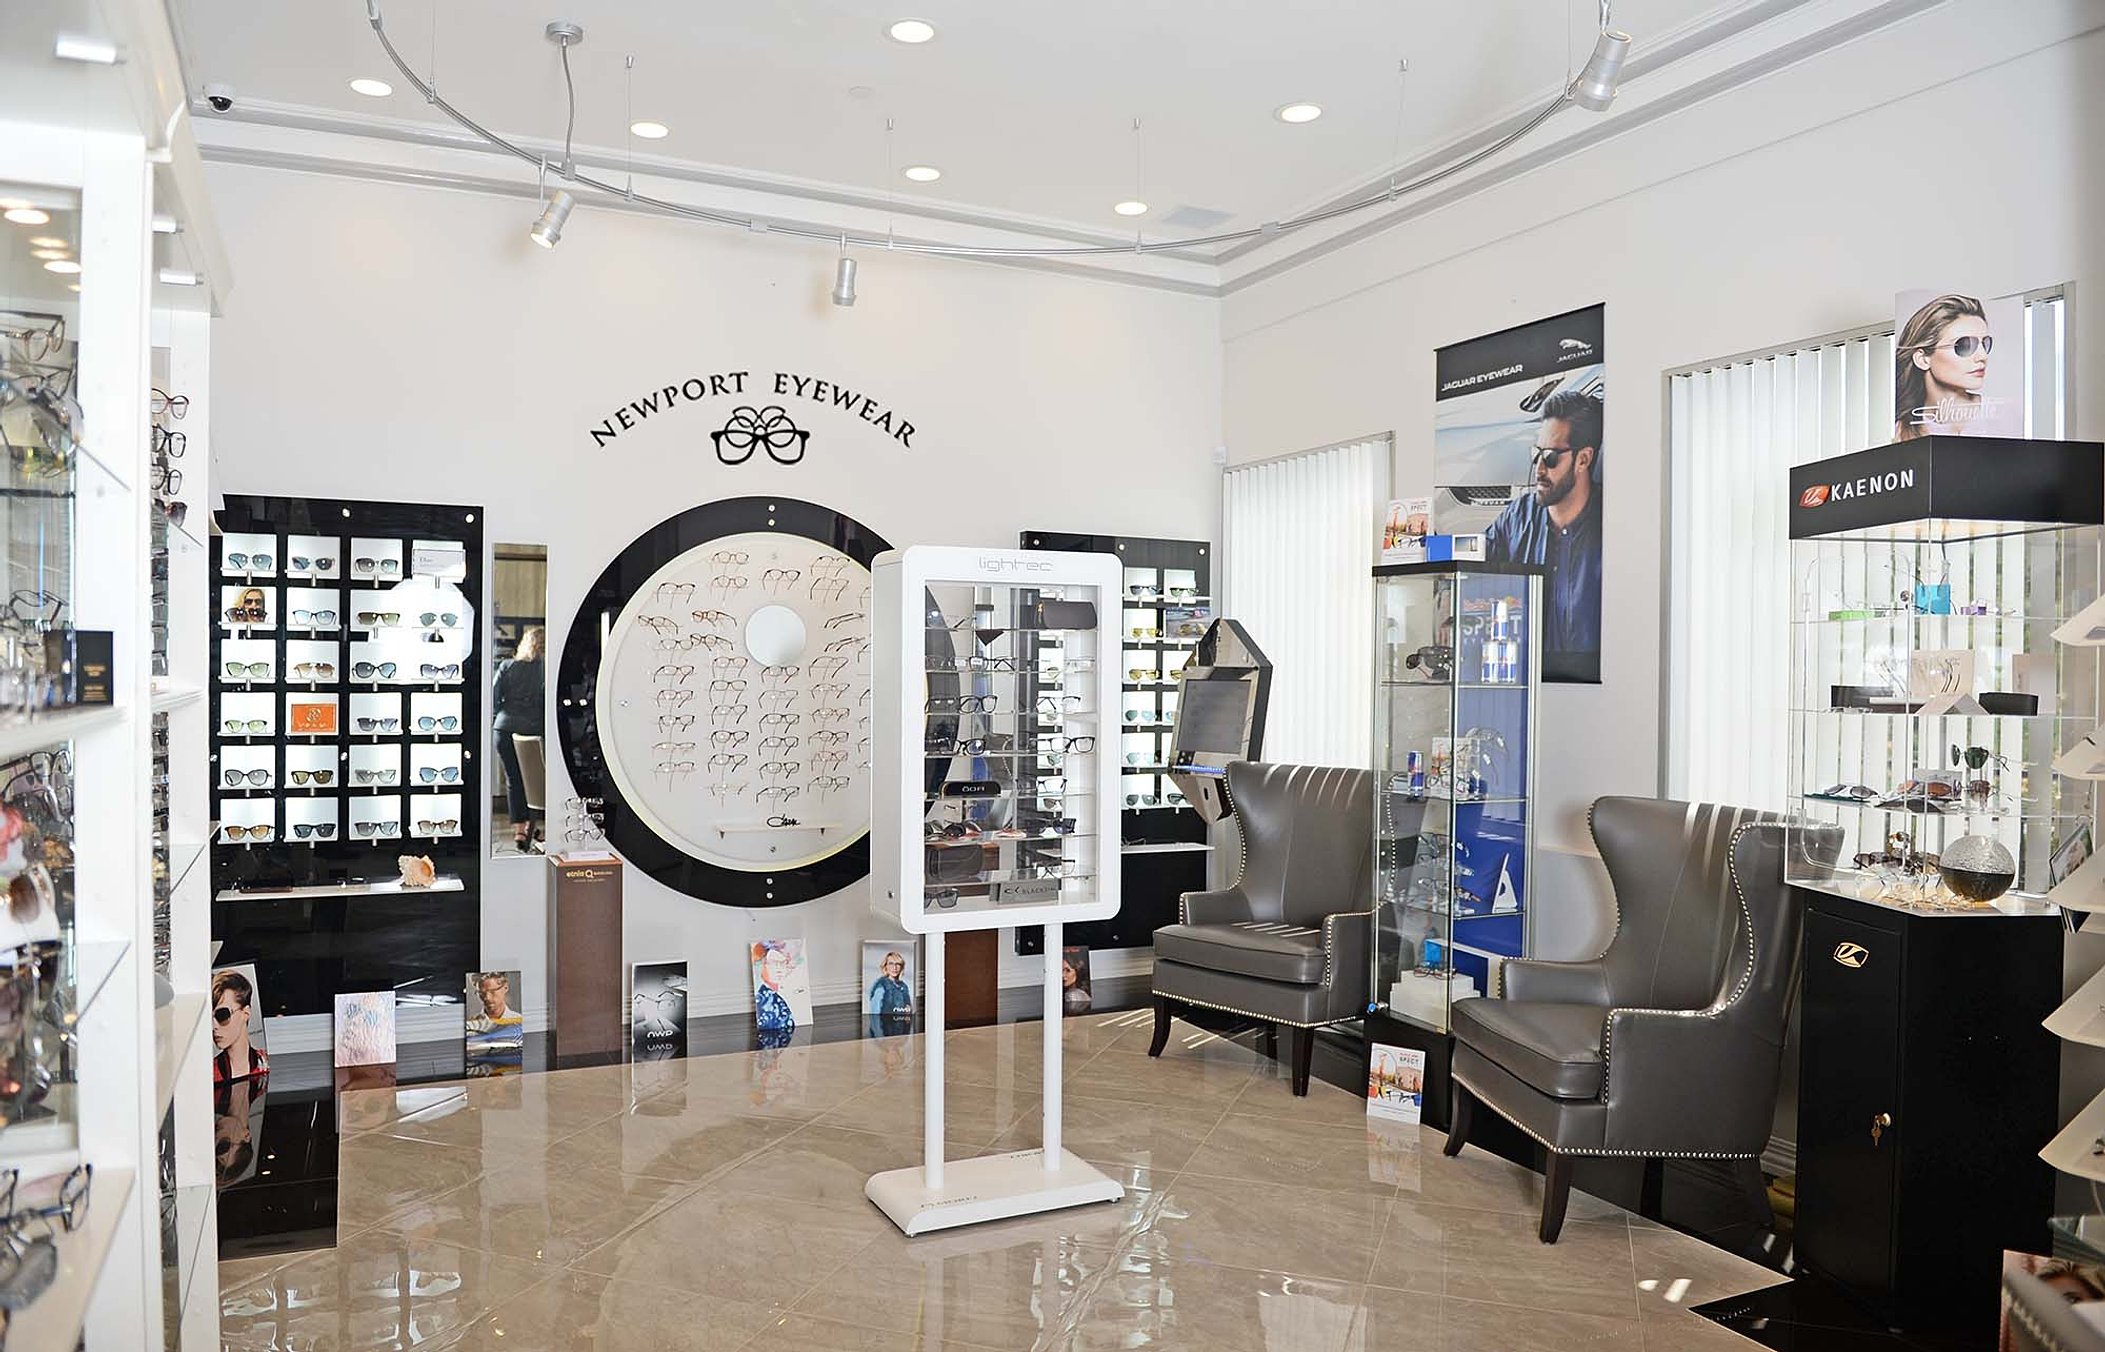 We At Newport Eyewear Have A Strong Commitment To Our Customers And It Shows